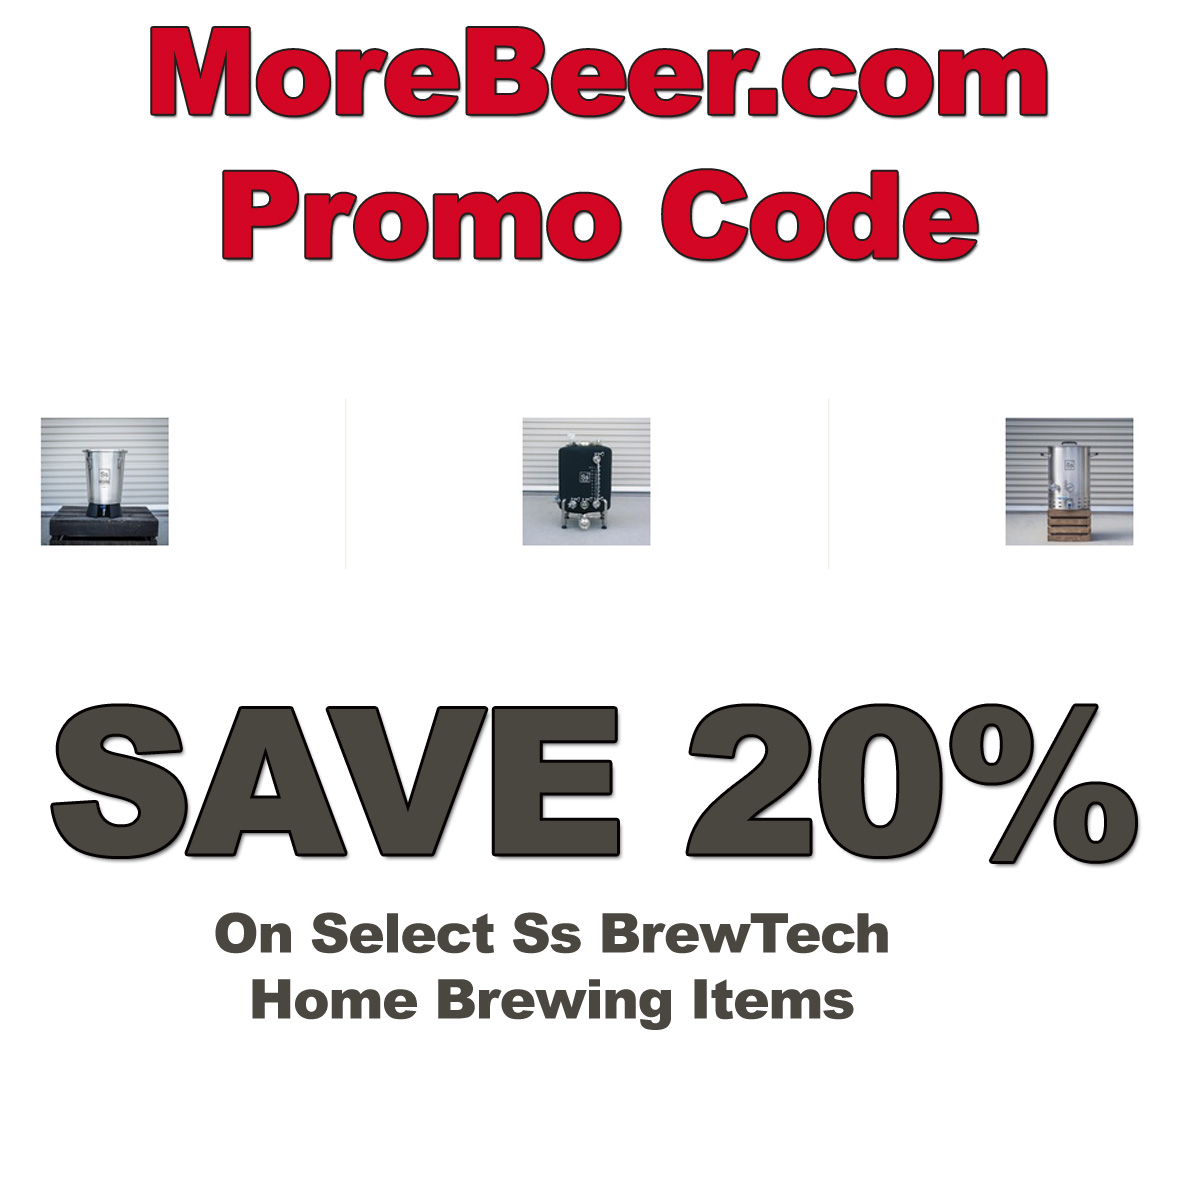 MoreBeer Save 20% On Select SS BrewTech Home Brewing Items With This MoreBeer.com Promo Code Coupon Code